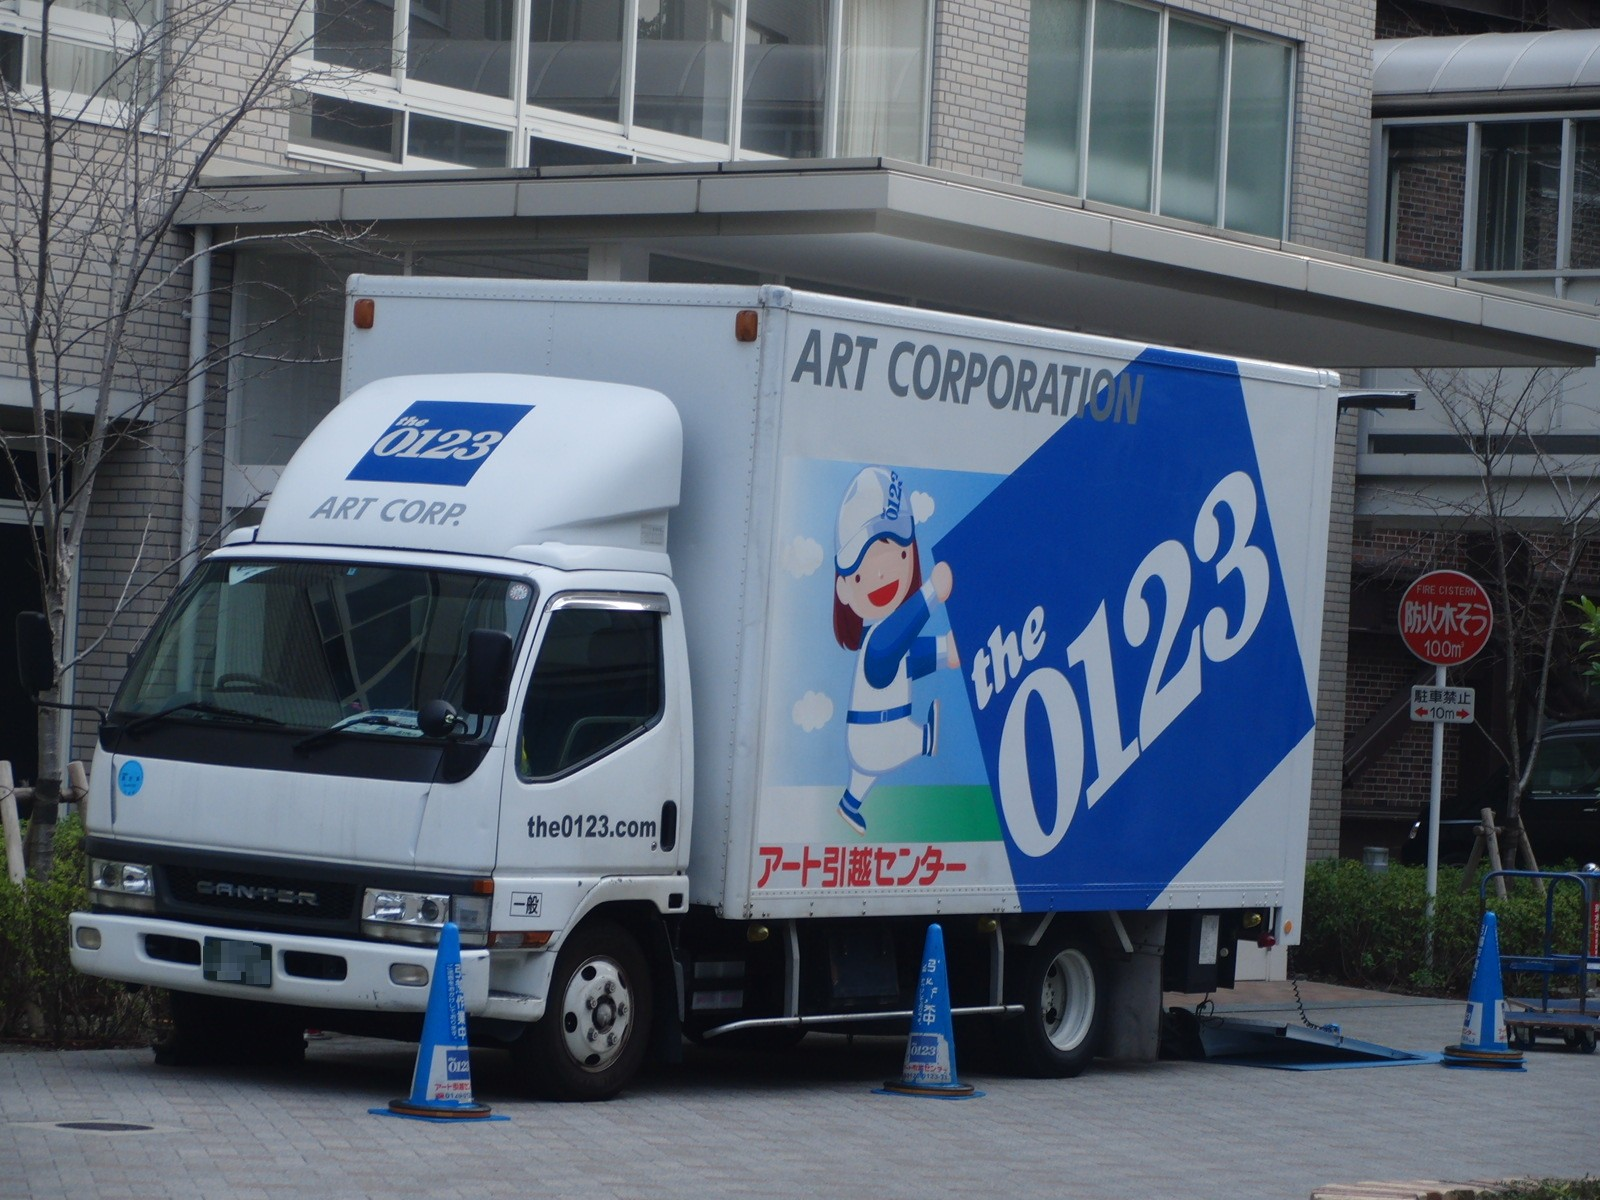 2015-11-15_2015_A_moving_van_of_Art_Corporation